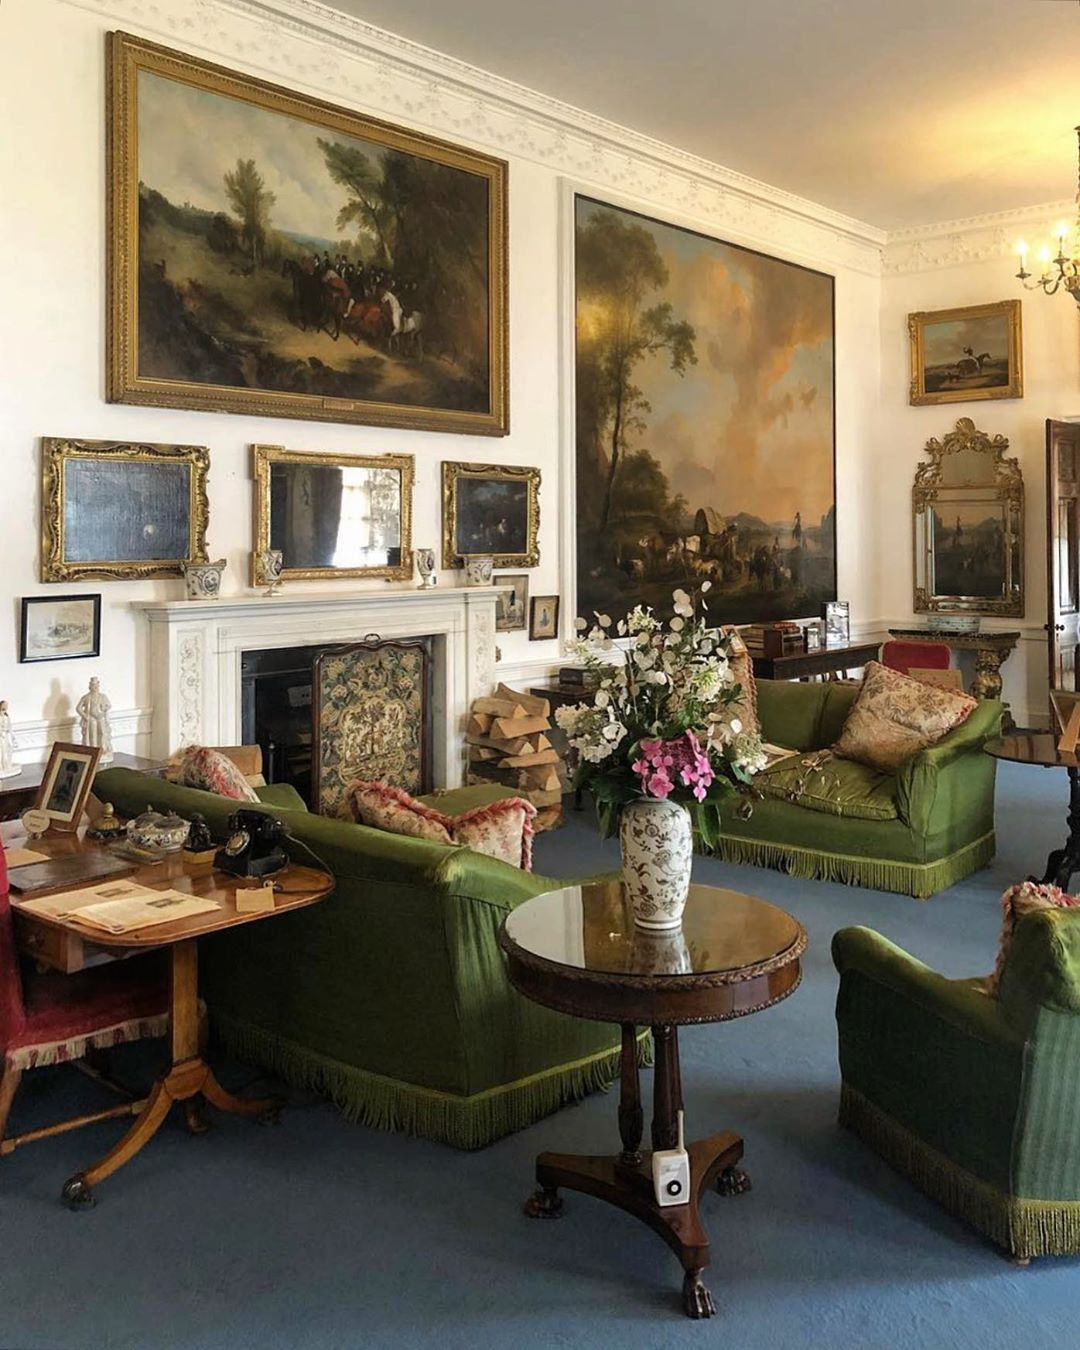 Daniel Slowik On Instagram Green Sofas And Giant Oil Paintings In The Drawing Room At Plas Newedd Courtesy Of Willelc Interiors In 2020 Interior Decor Green Sofa